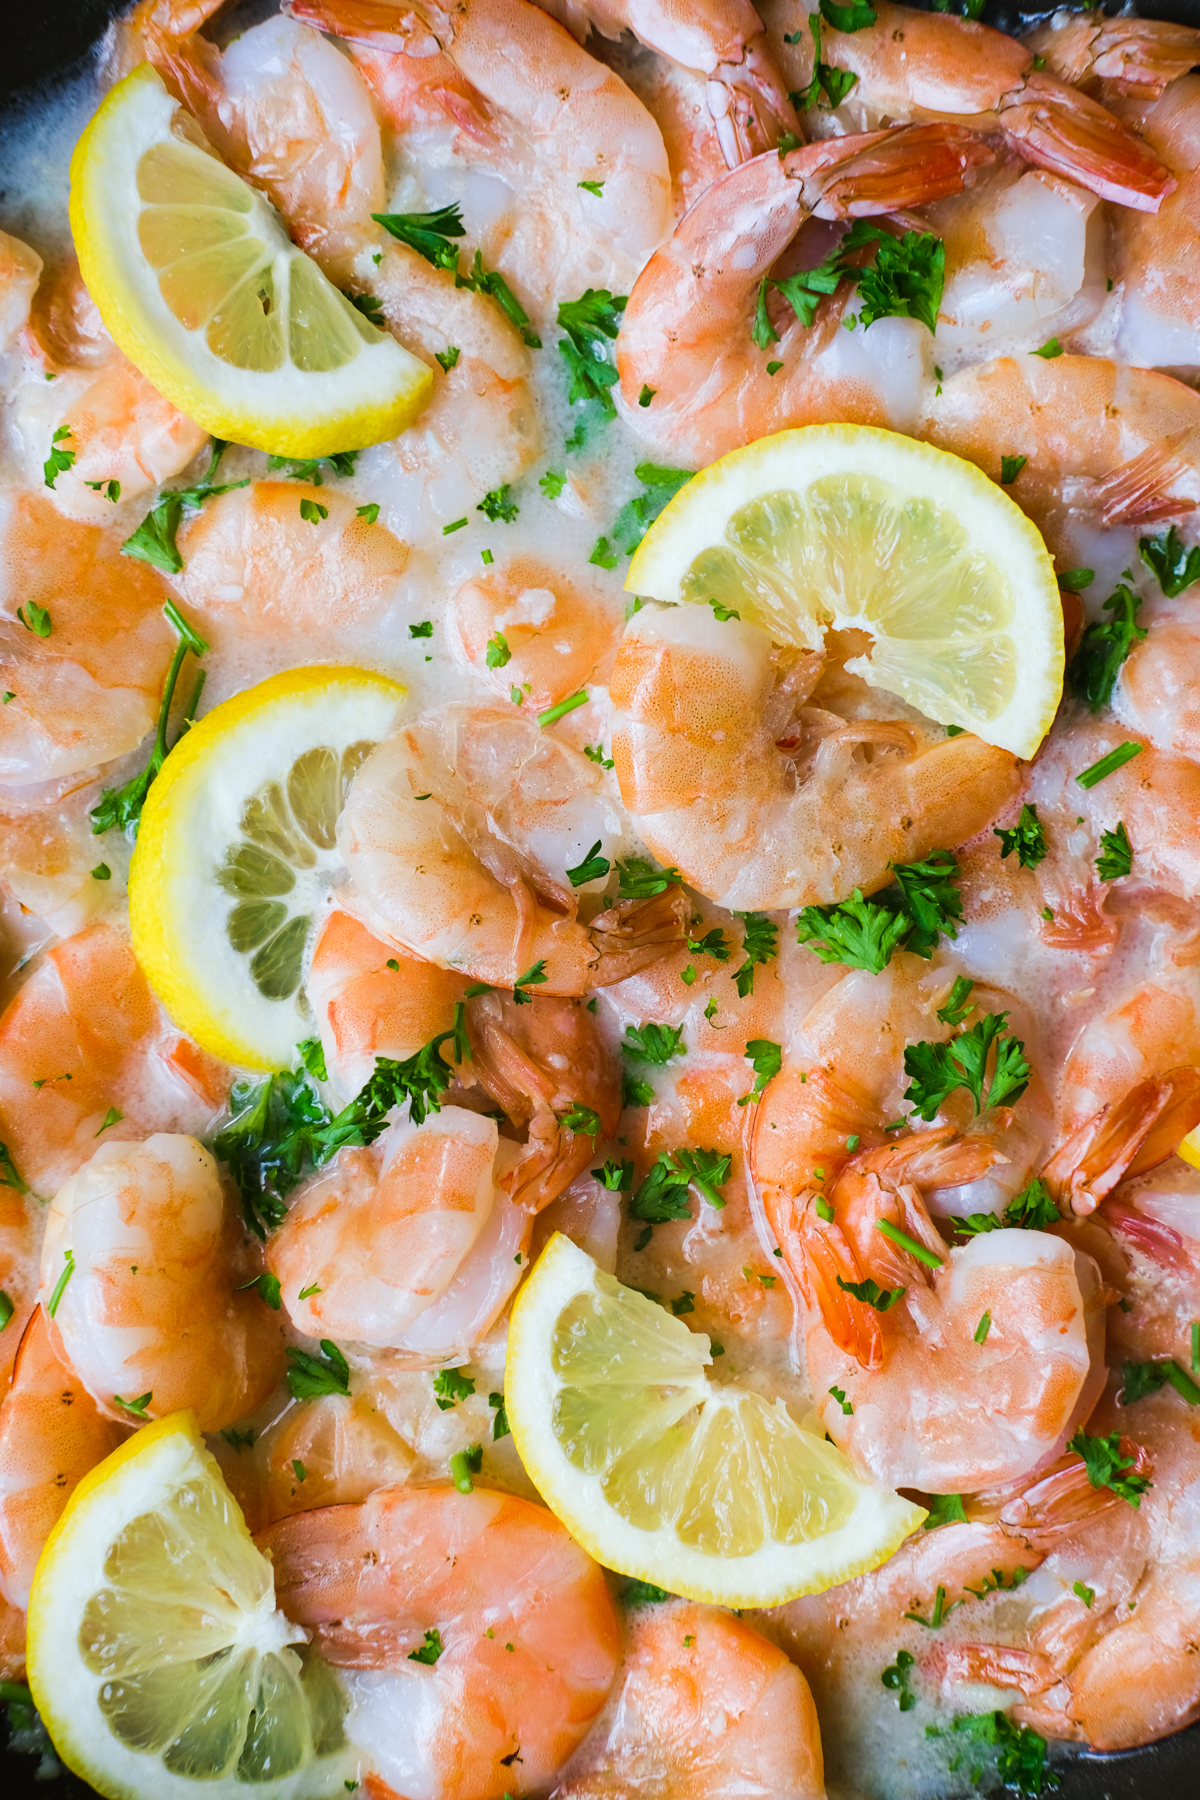 shrimp in a garlic lemon white wine sauce with parsley